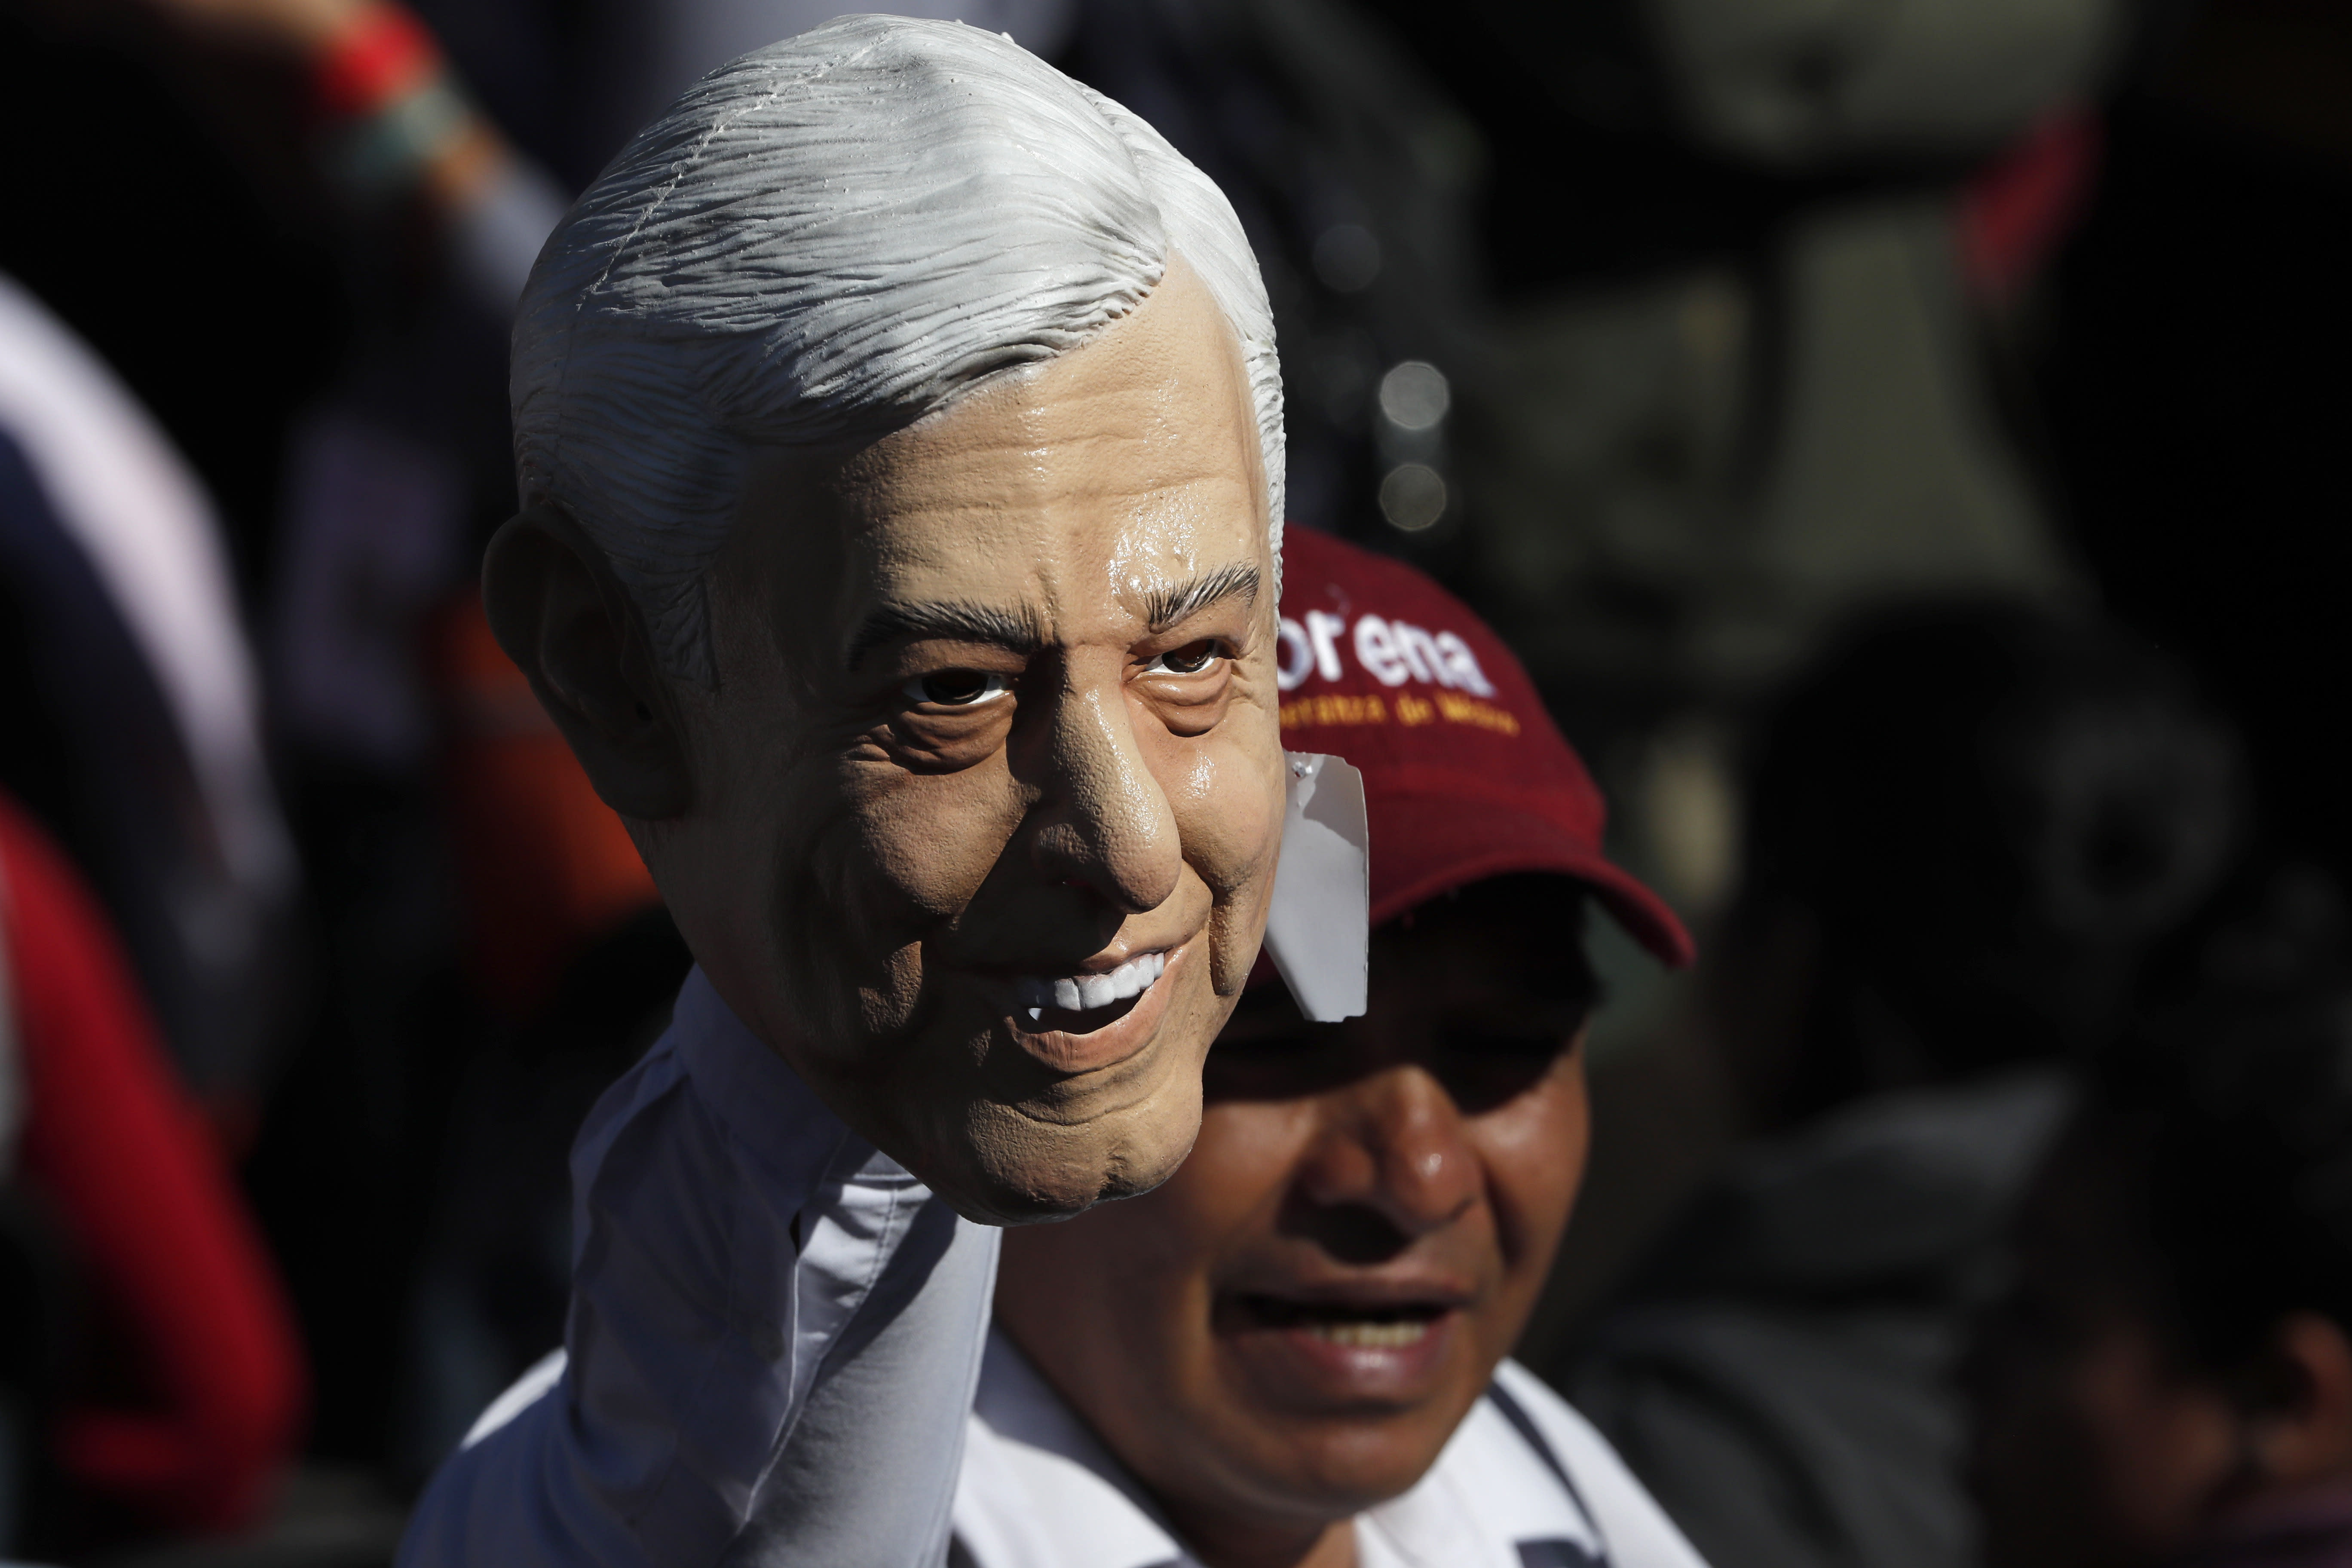 A supporter of Mexico's President Andres Manuel Lopez Obrador holds a rubber mask of Lopez Obrador during a rally to commemorate the President's one year anniversary in office, in Mexico City, Sunday December 1, 2019. Lopez Obrador took office one year ago, vowing to transform Mexico. He has focused on austerity and fighting corruption because corrupt, high-living politicians have angered Mexicans perhaps more than anything else. (AP Photo/Marco Ugarte)